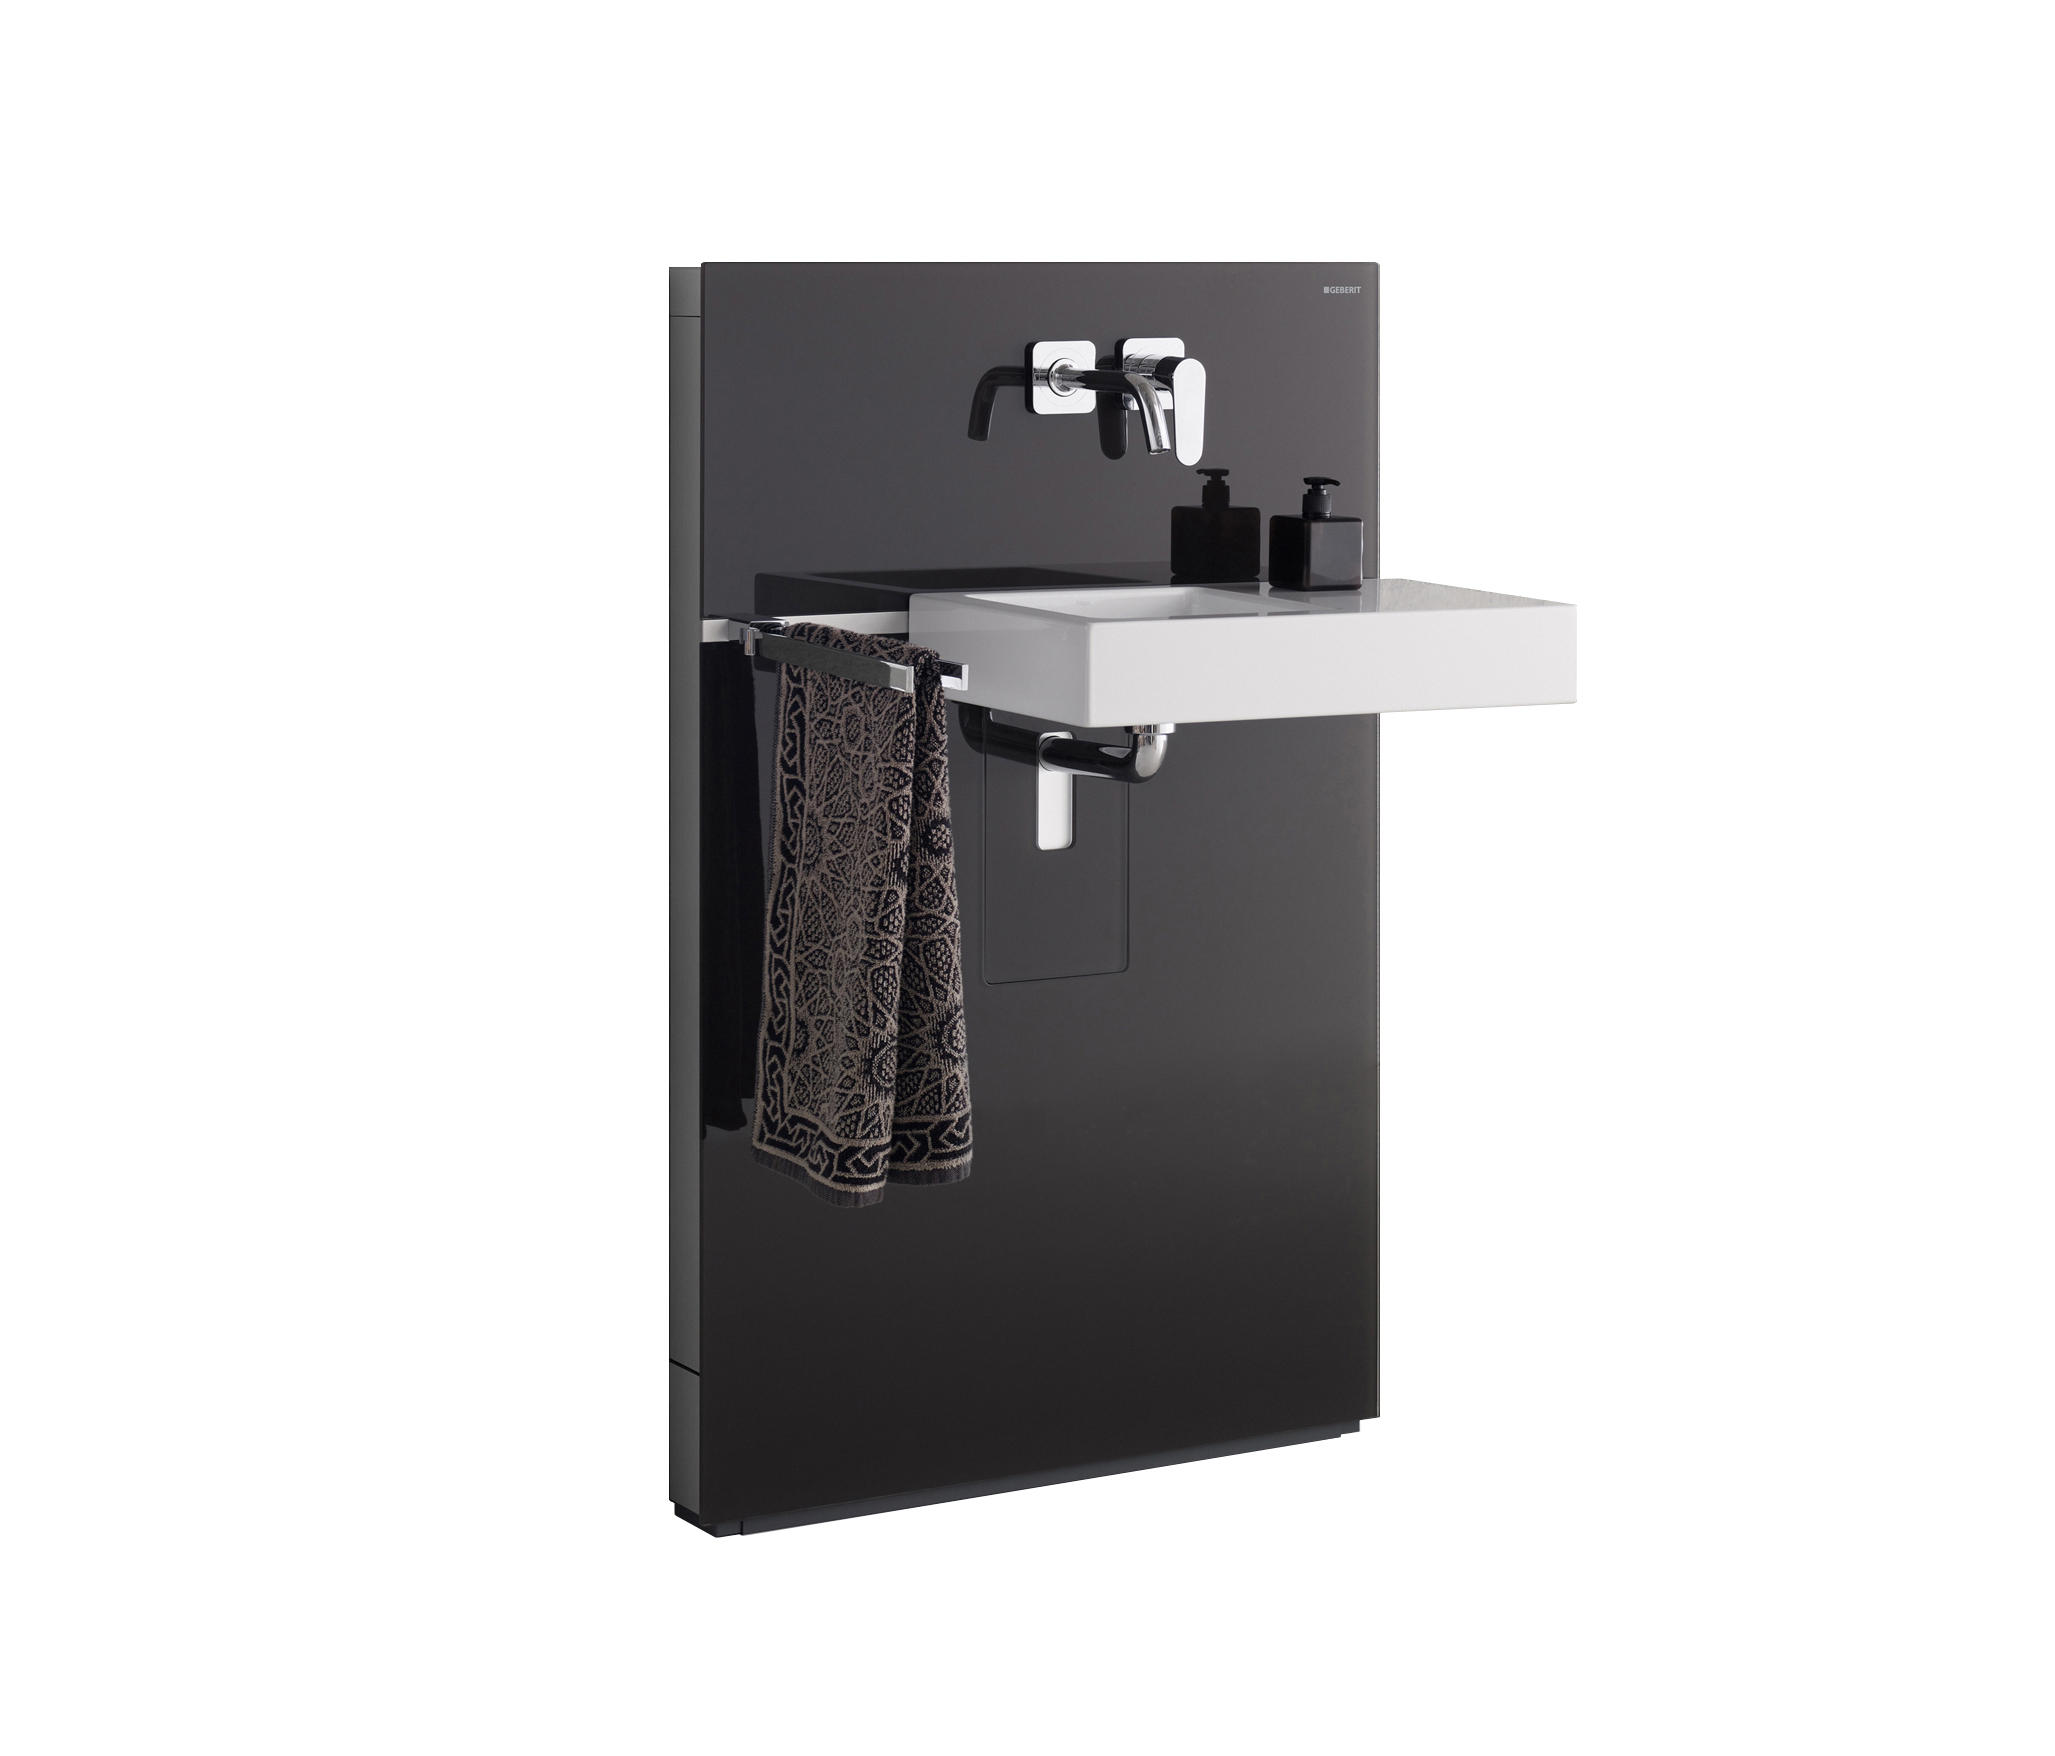 geberit monolith f r den waschtisch waschtischarmaturen. Black Bedroom Furniture Sets. Home Design Ideas